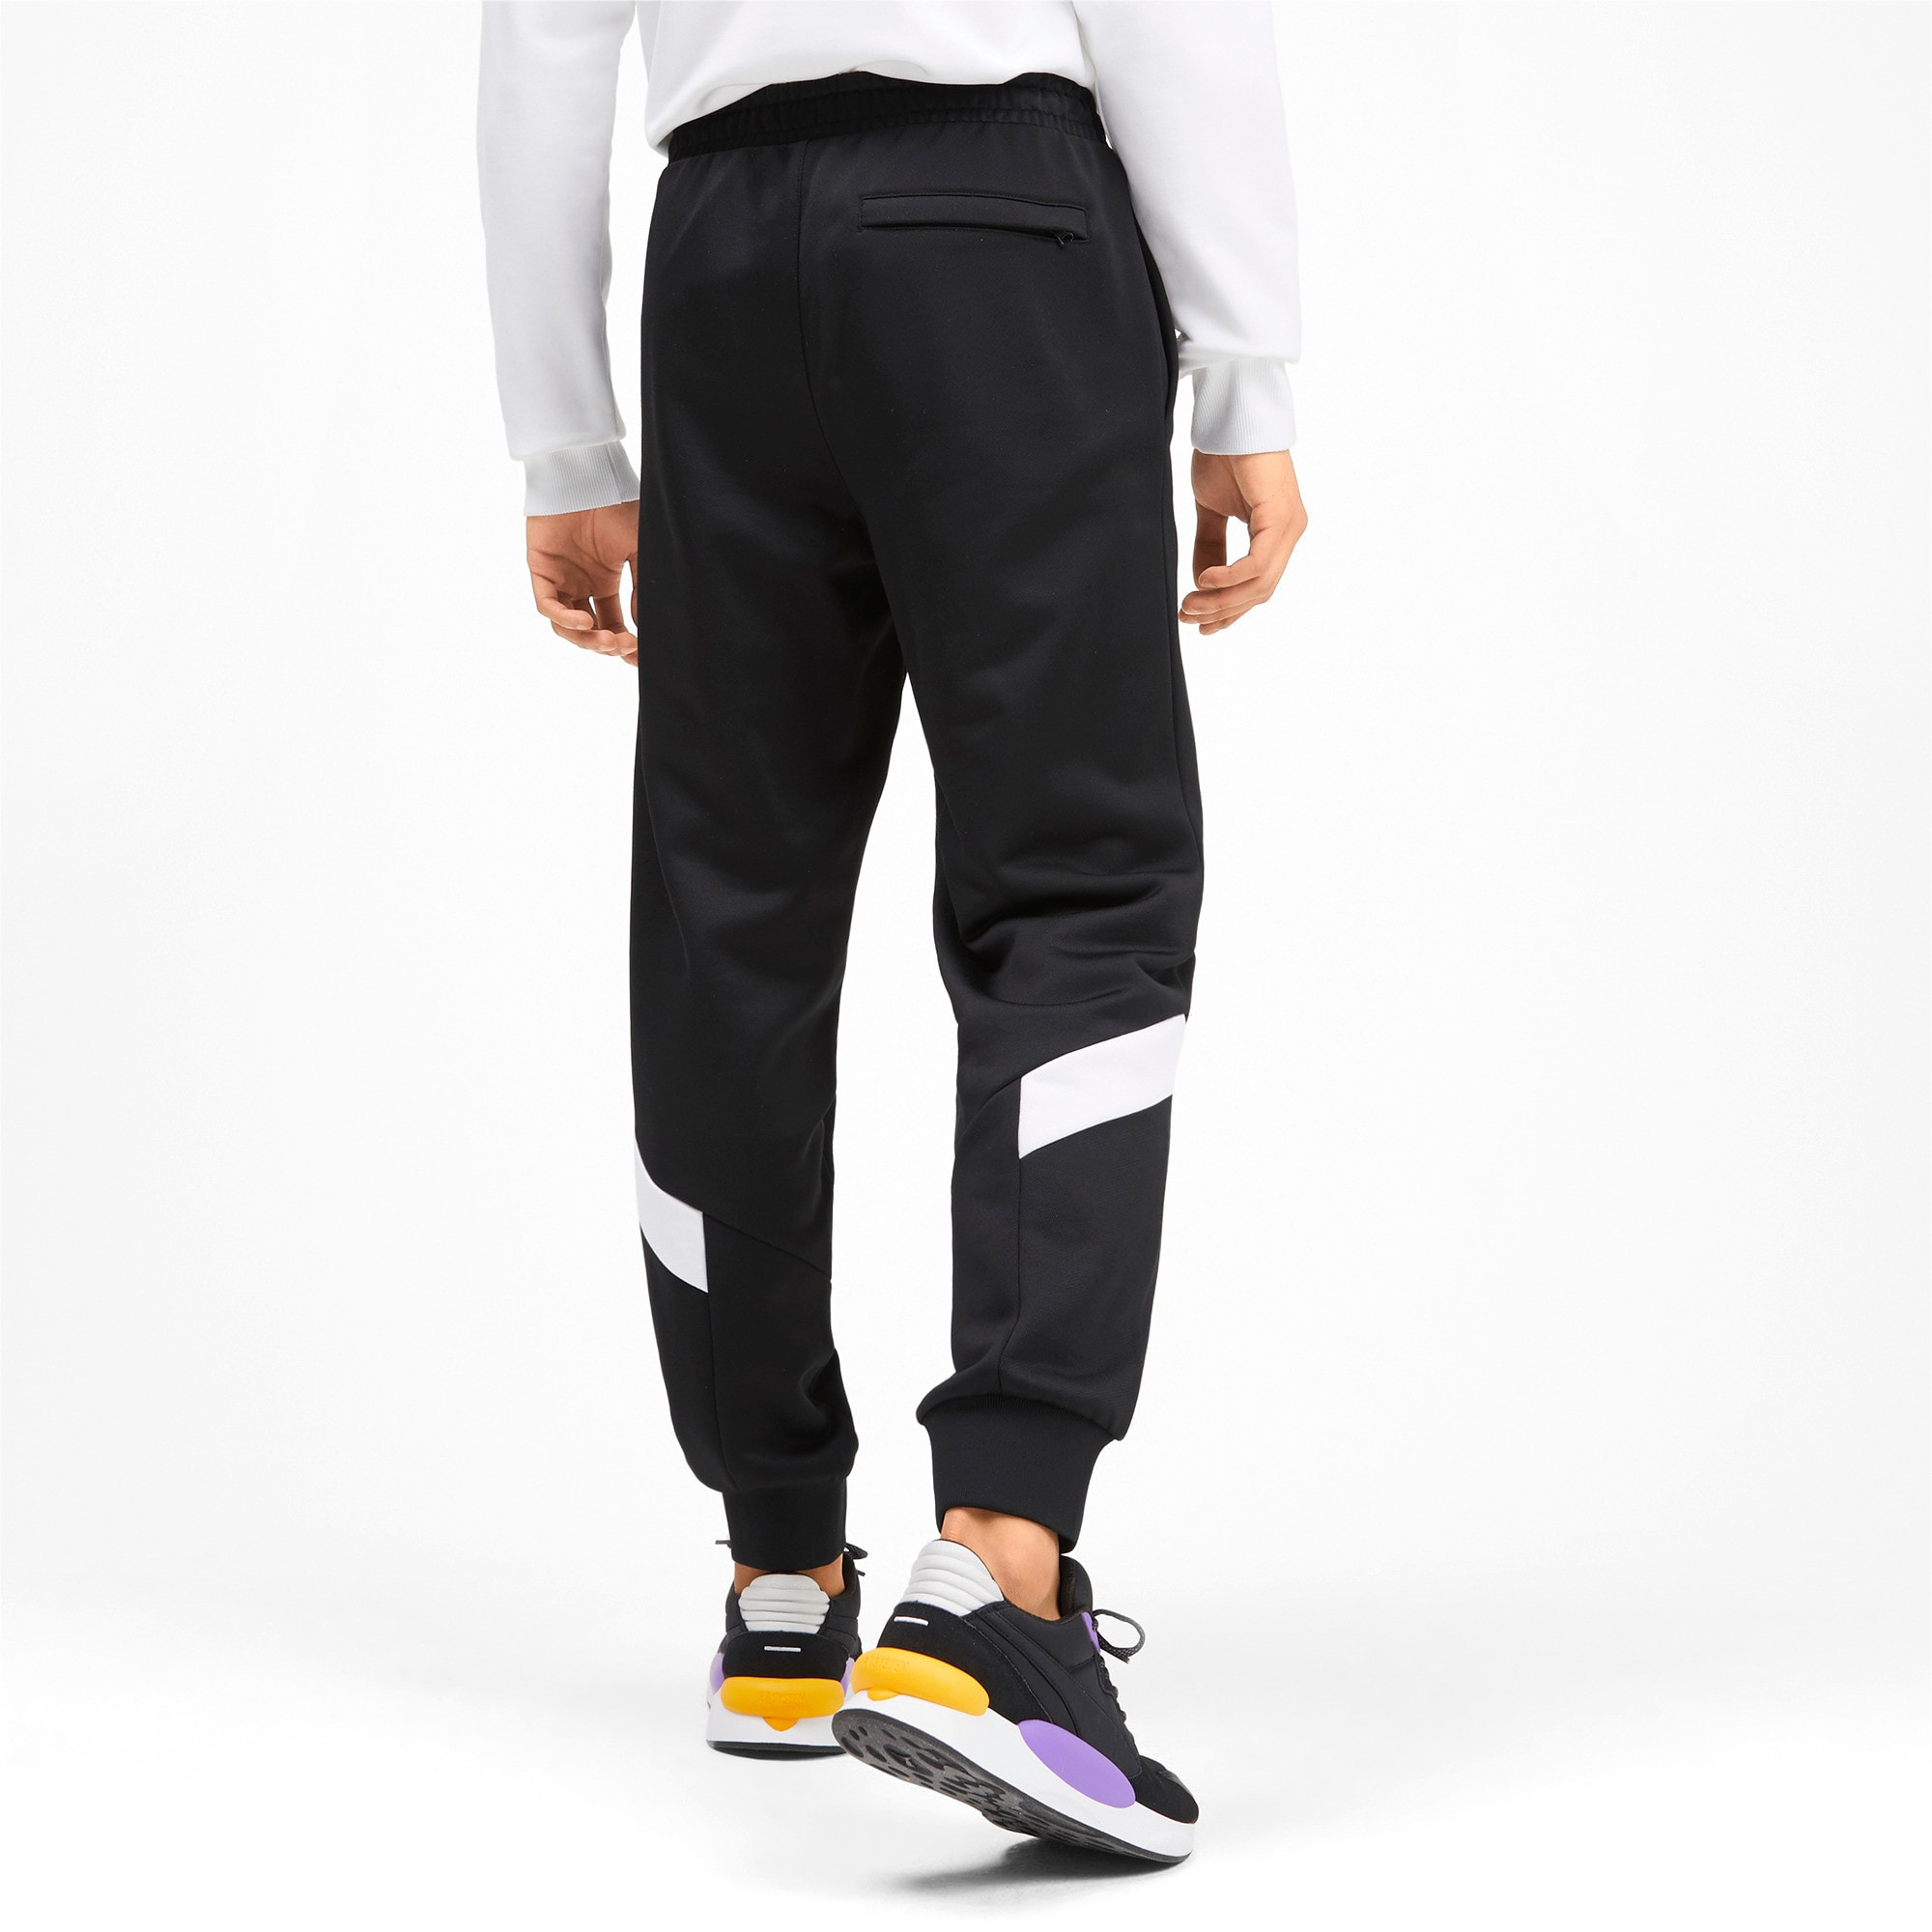 Thumbnail 2 of Iconic MCS Men's Track Pants, Puma Black, medium